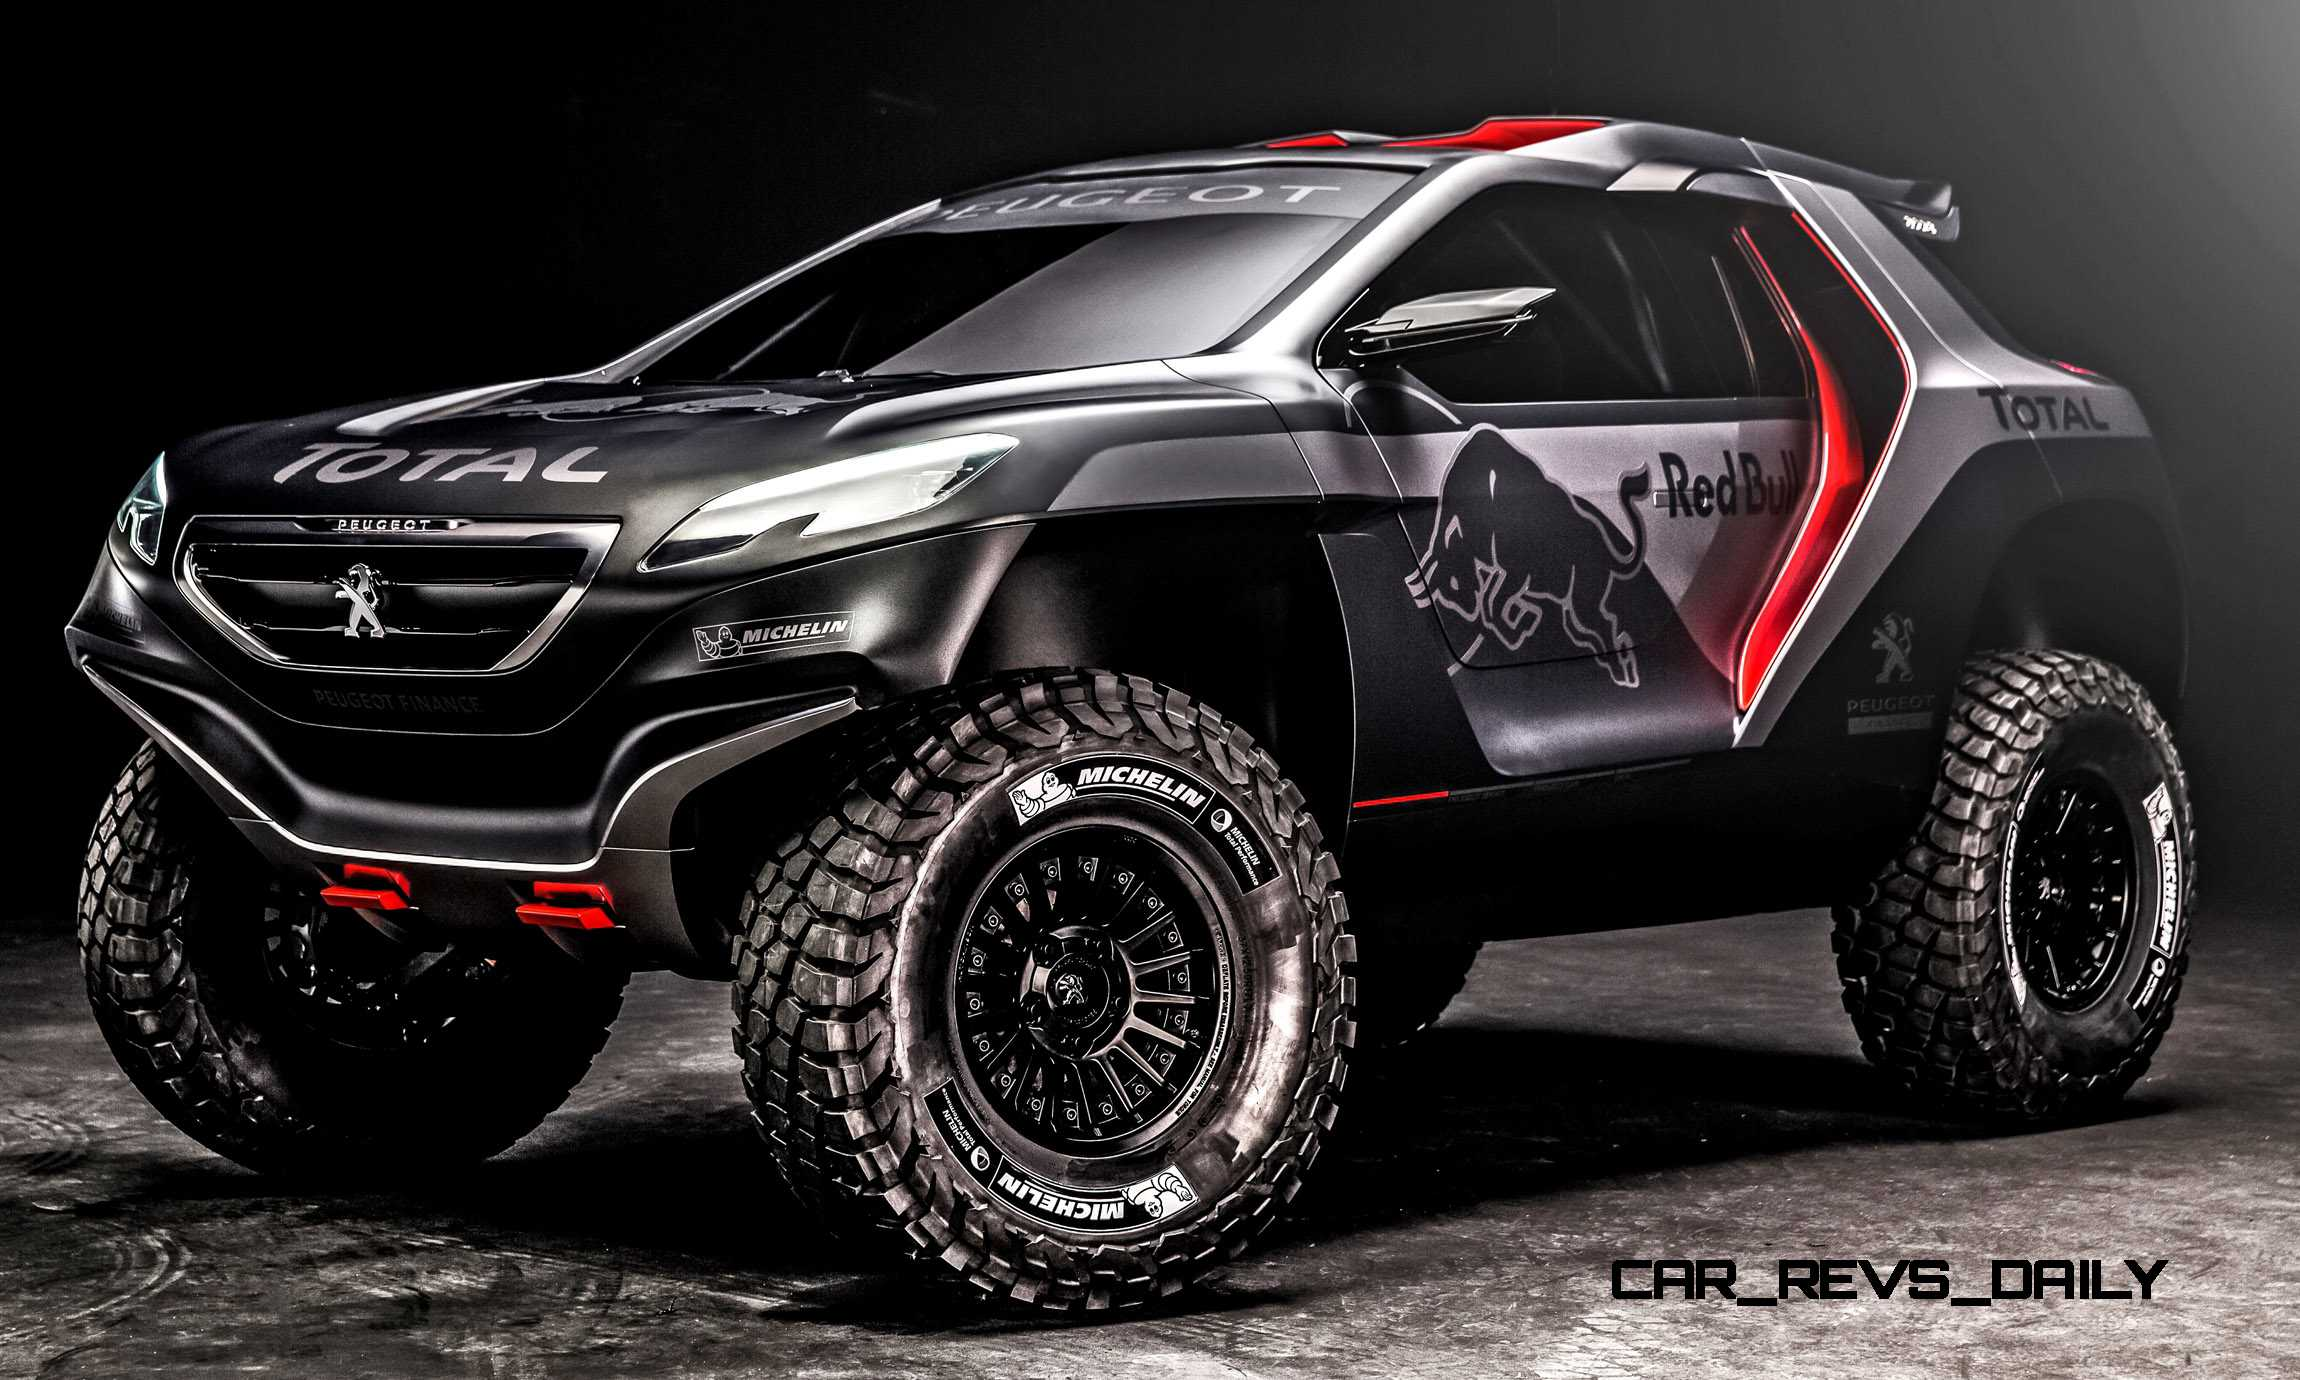 peugeot 2008 dkr revealed in nanterre france on march. Black Bedroom Furniture Sets. Home Design Ideas